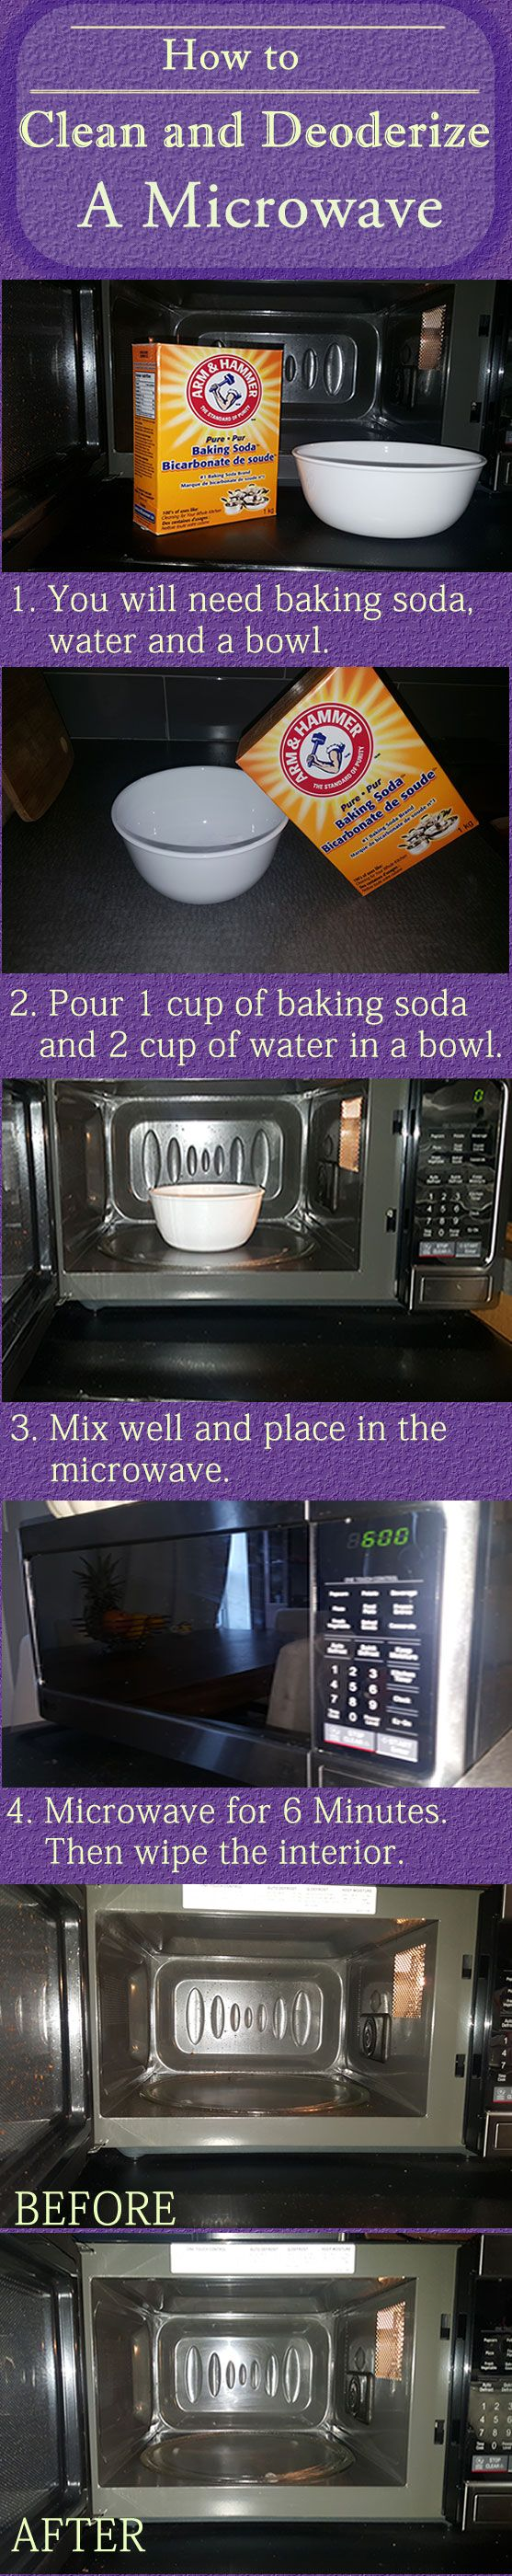 How To Clean And Deodorize A Microwave 1 You Will Need Baking Soda, Water